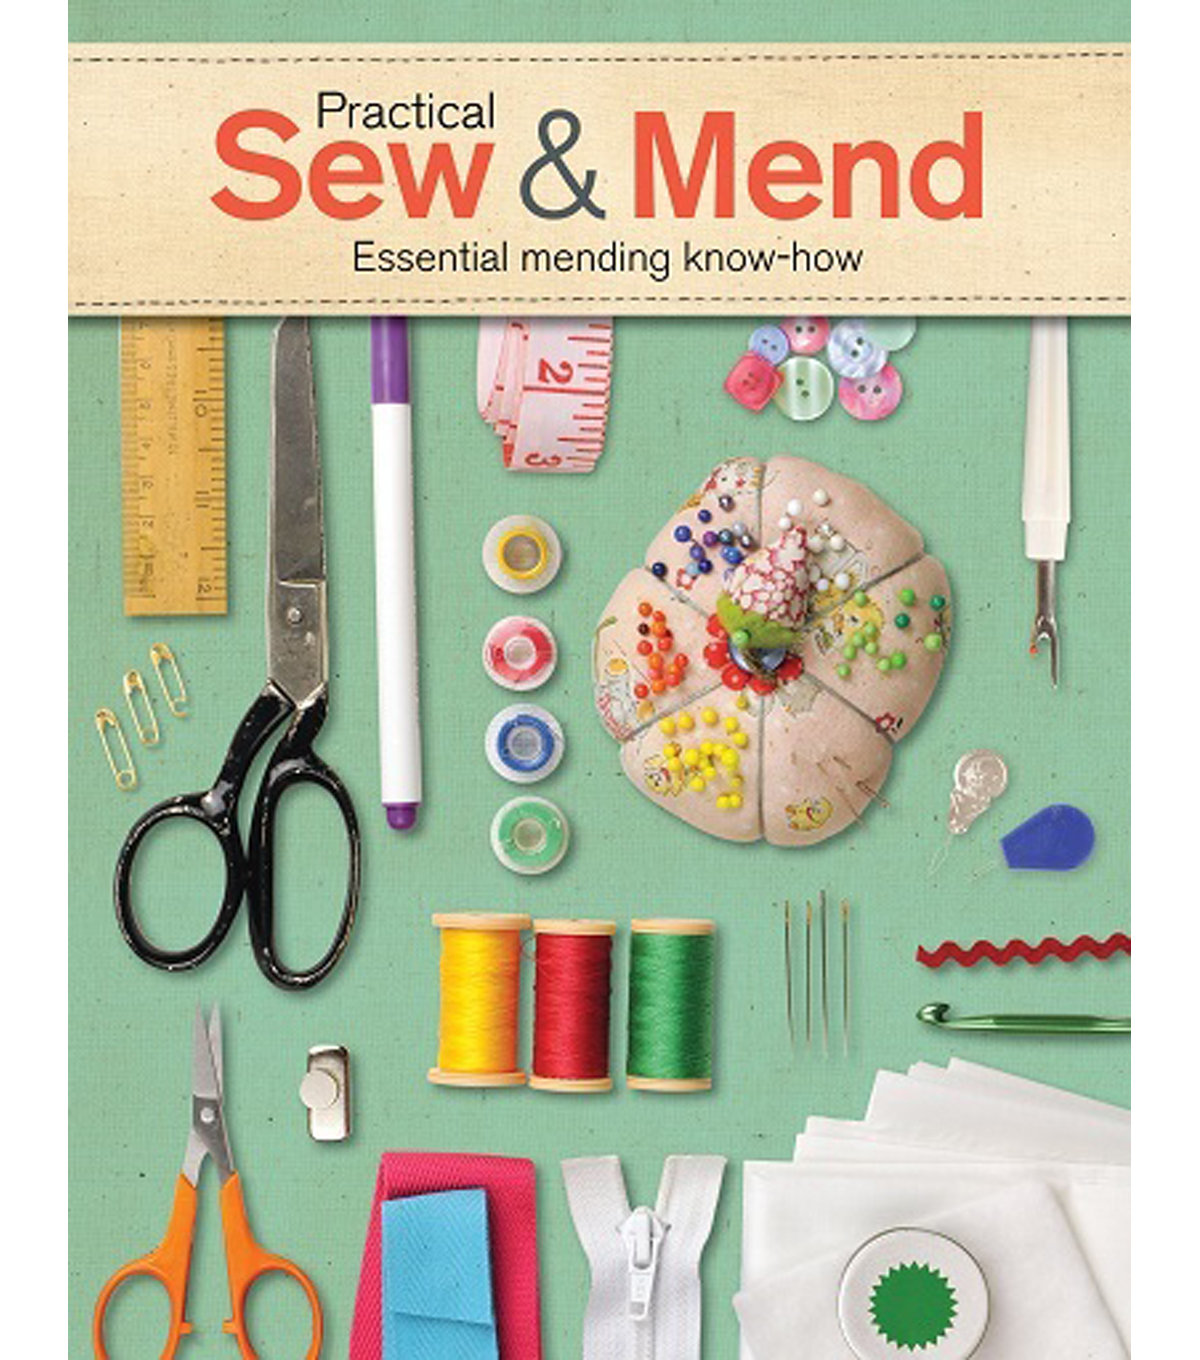 Practical Sew & Mend Book-Essential Mending Know-How